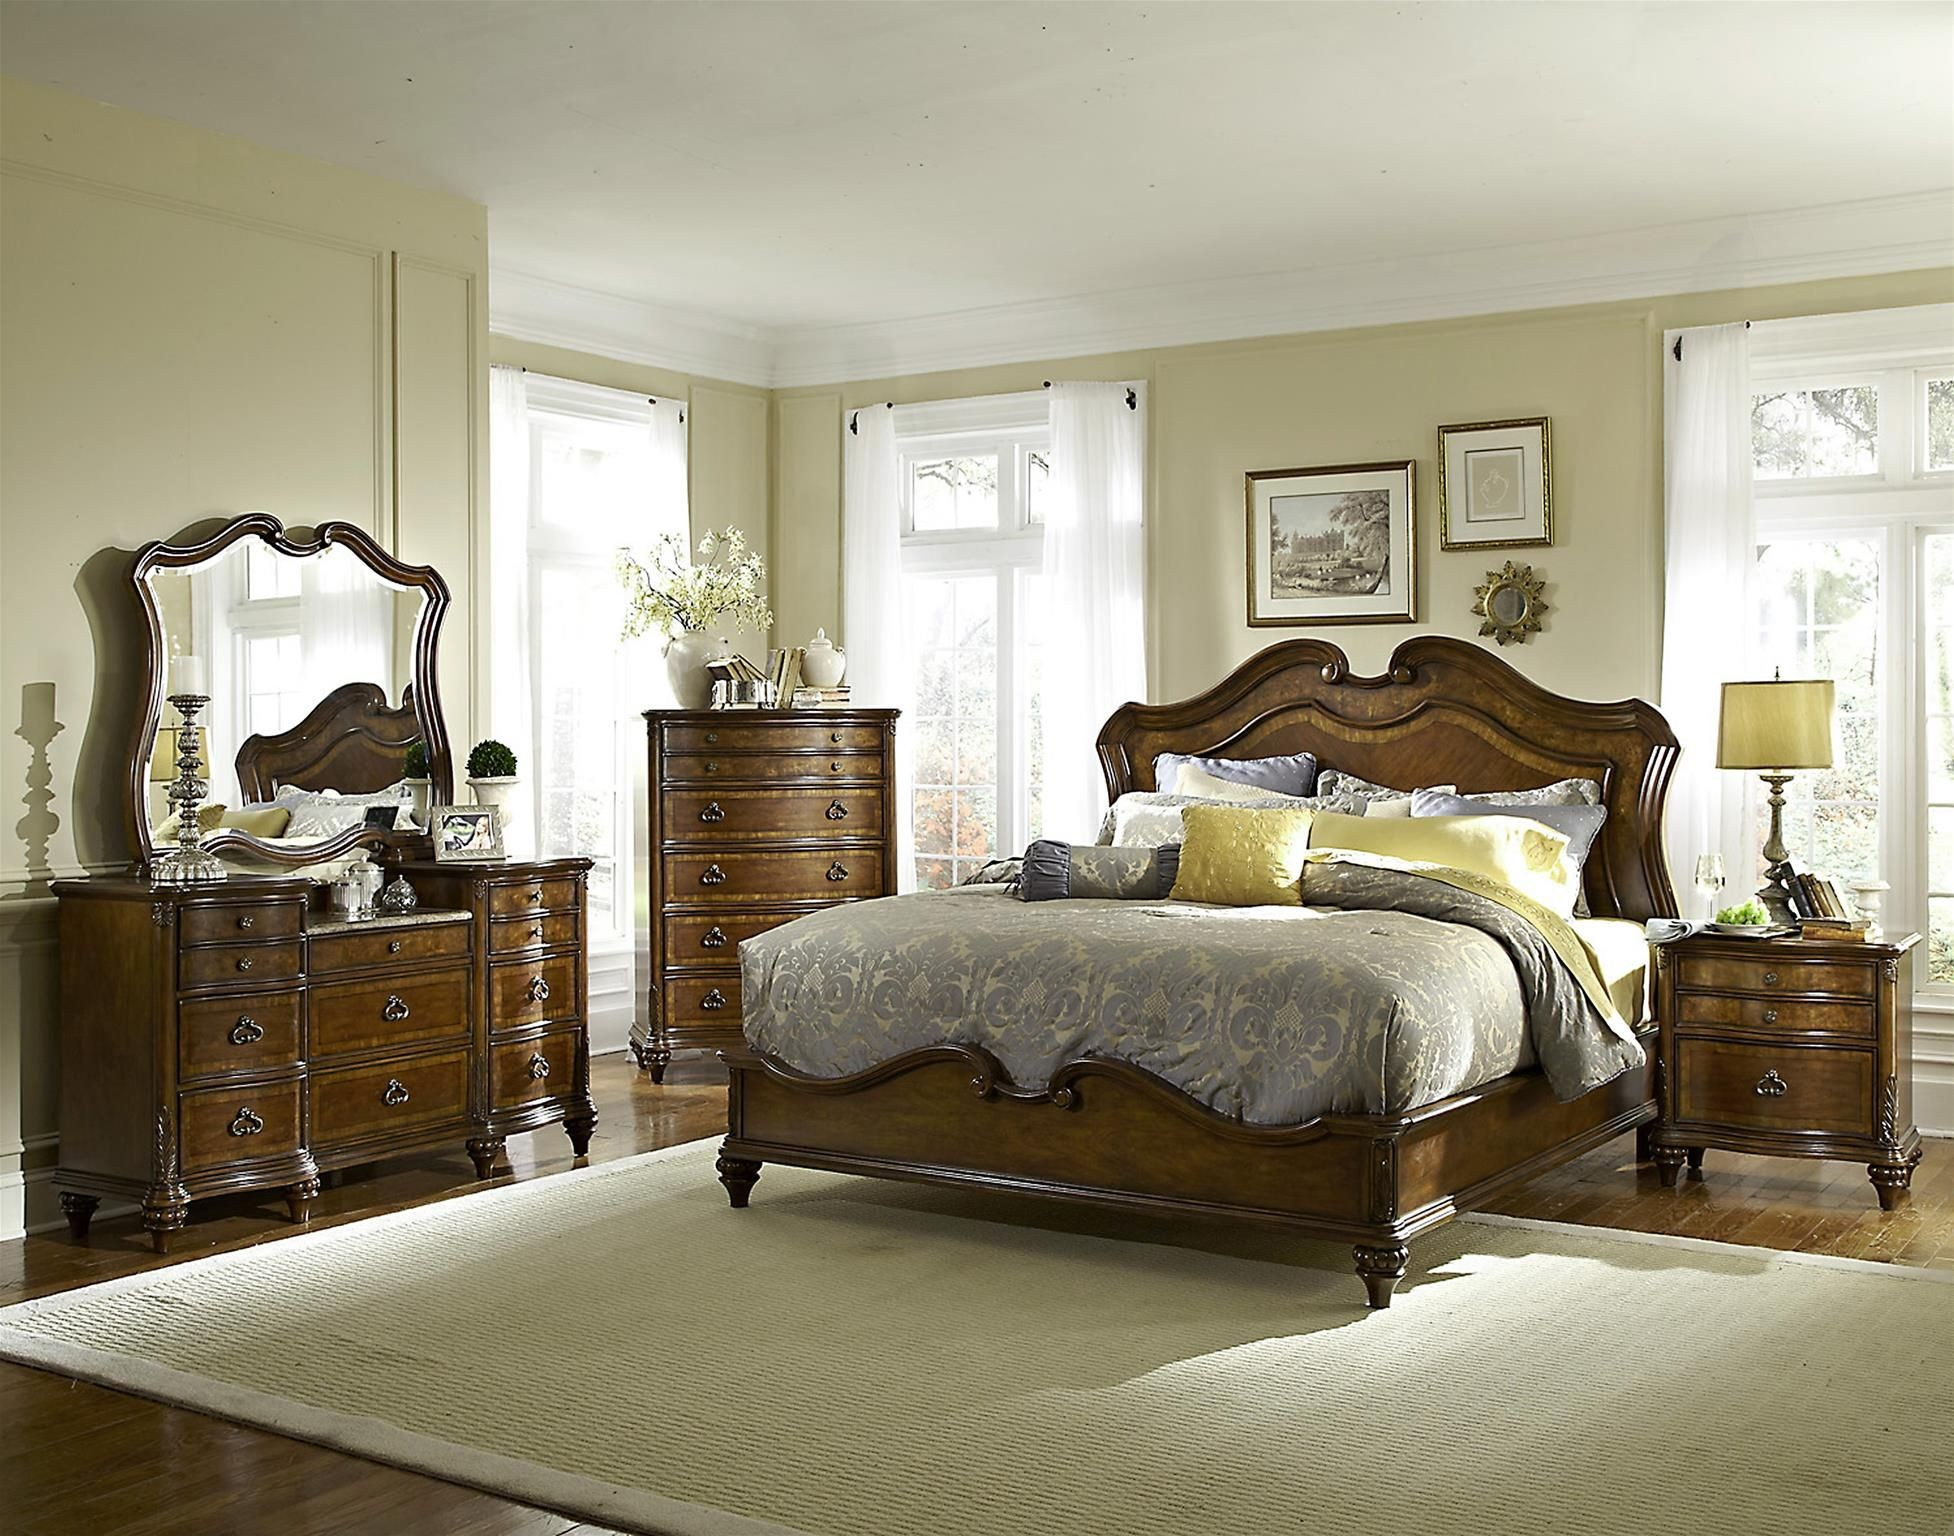 Marisol Brighton Cherry Panel Bedroom Set From Fairmont Designs S7057 Q Coleman Furniture